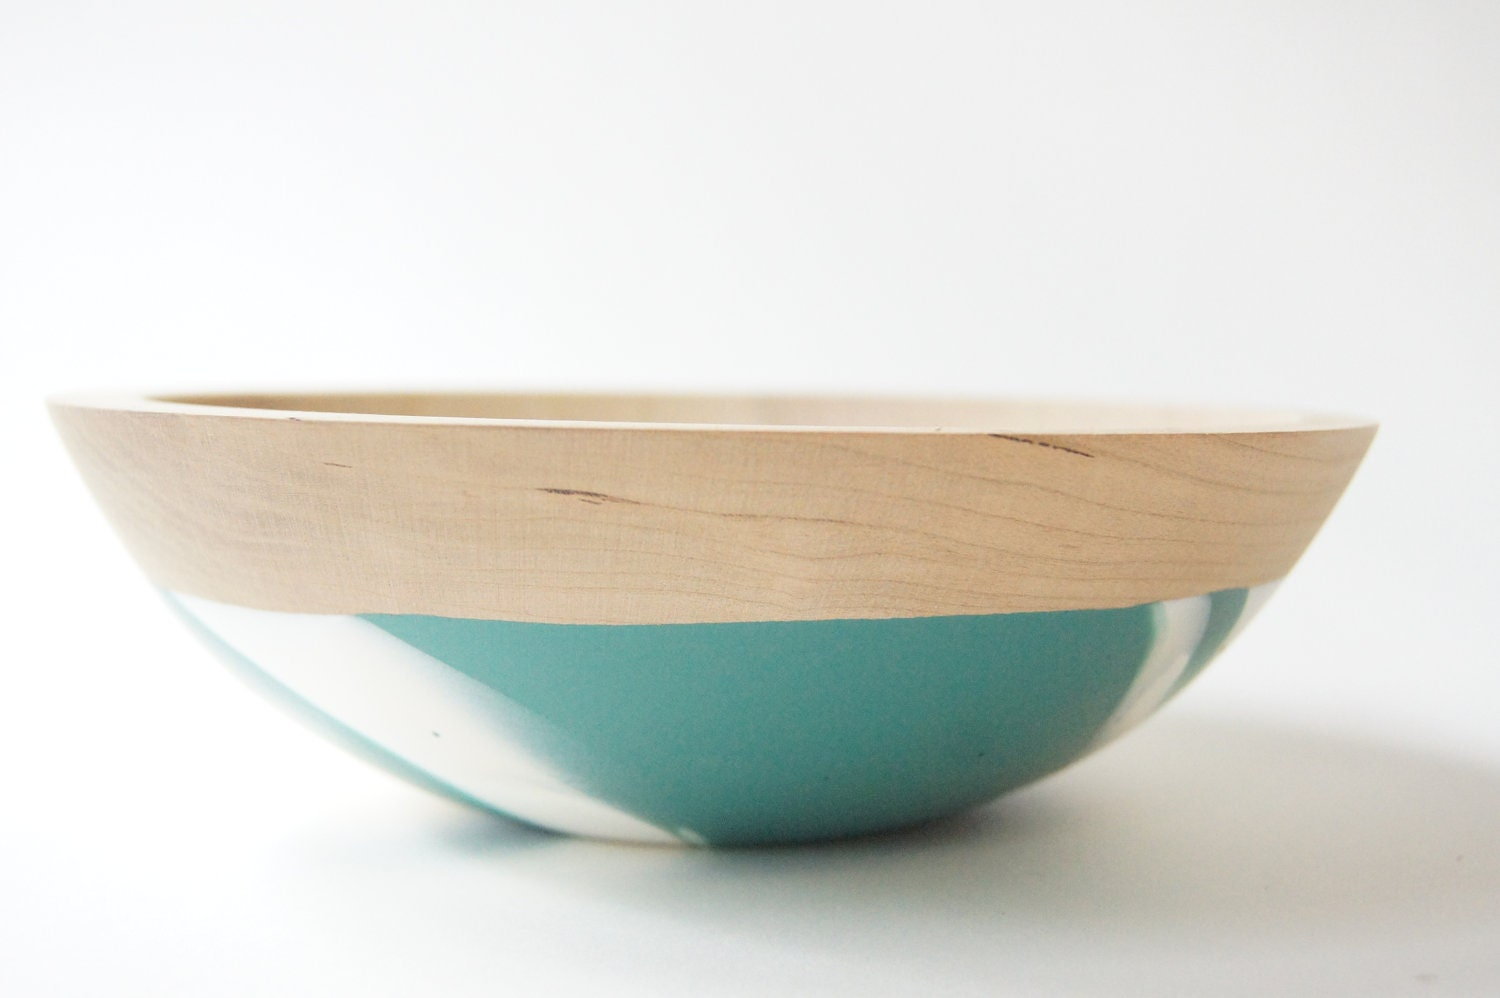 Wooden Salad Bowl 7 Teal And White Swirl Modern Decor